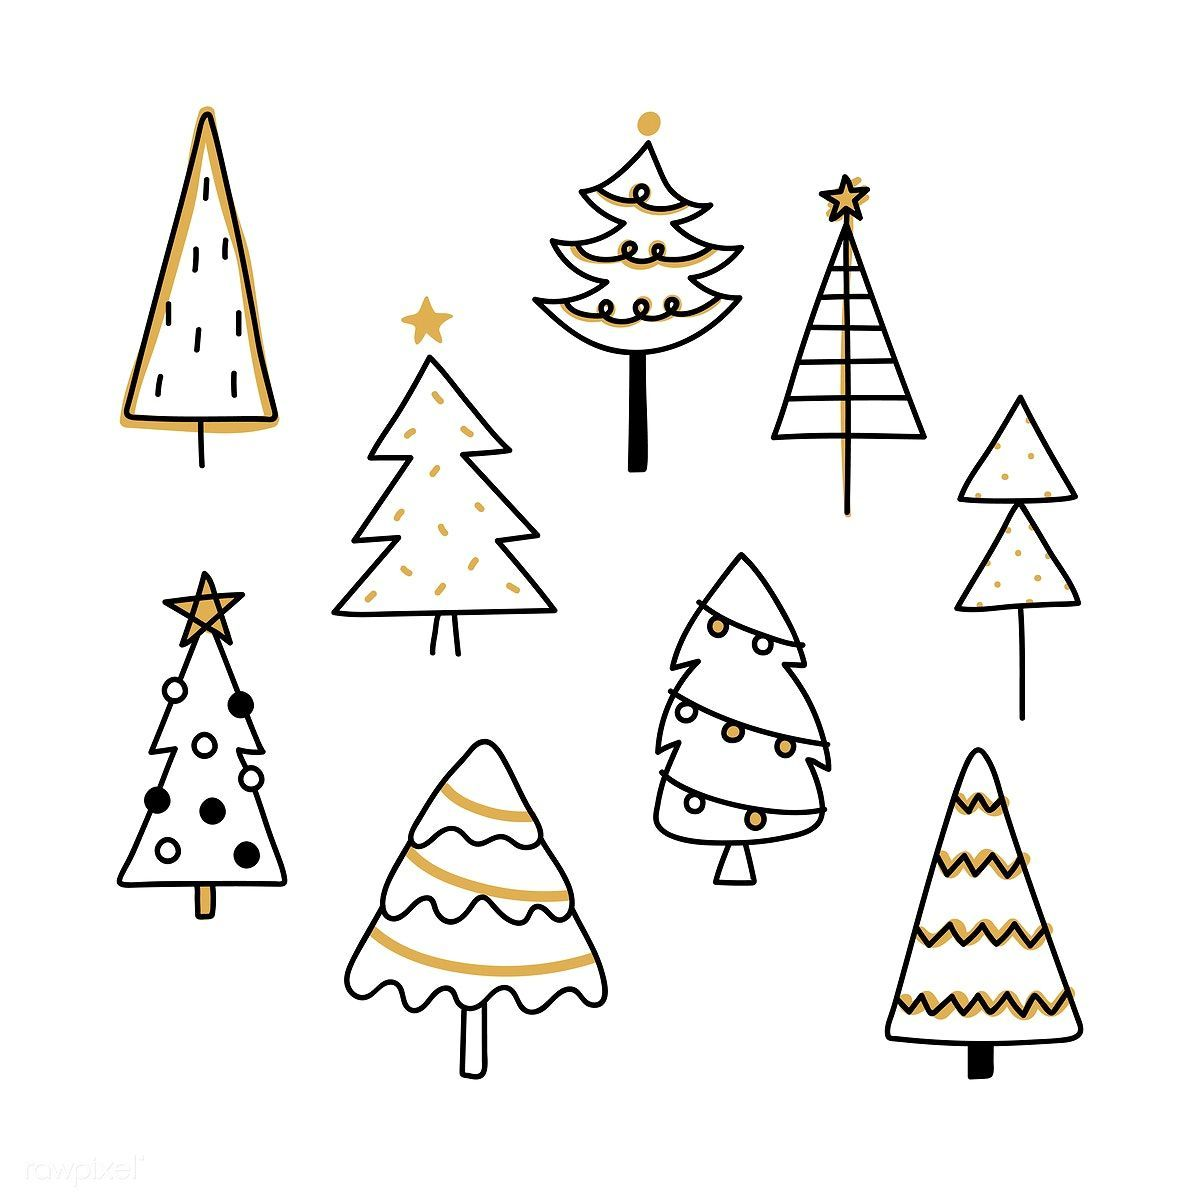 Christmas Pine Tree Pattern Background Drawing Doodle Style Premium Image By Rawpixel Com Ningzk In 2020 Christmas Tree Drawing Christmas Drawing Christmas Doodles